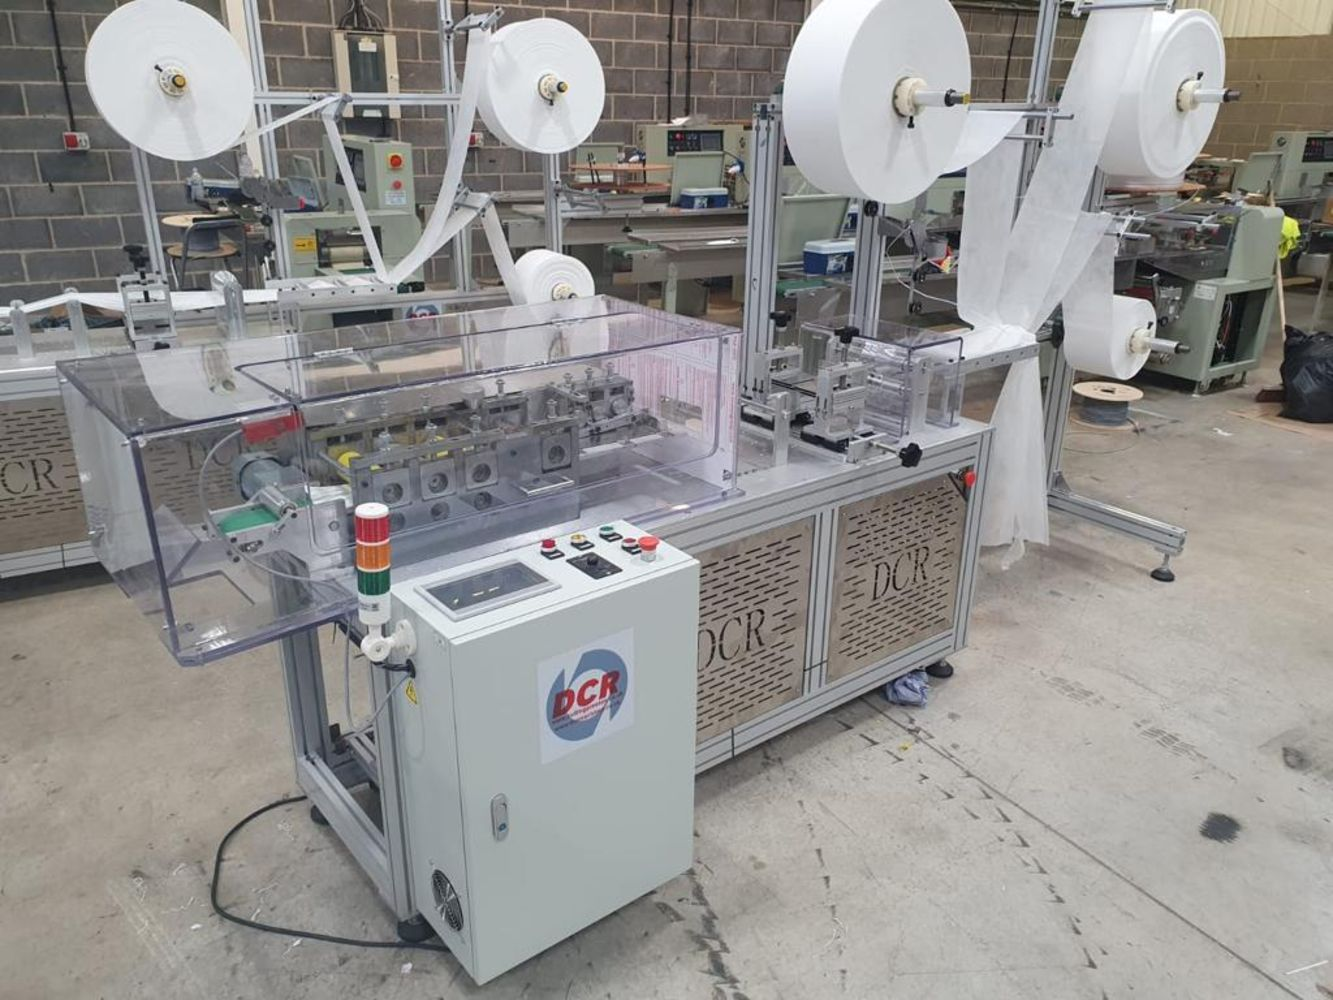 Online Auction Sale of a Full DCR MMM150 PPE Mask Making Production Line